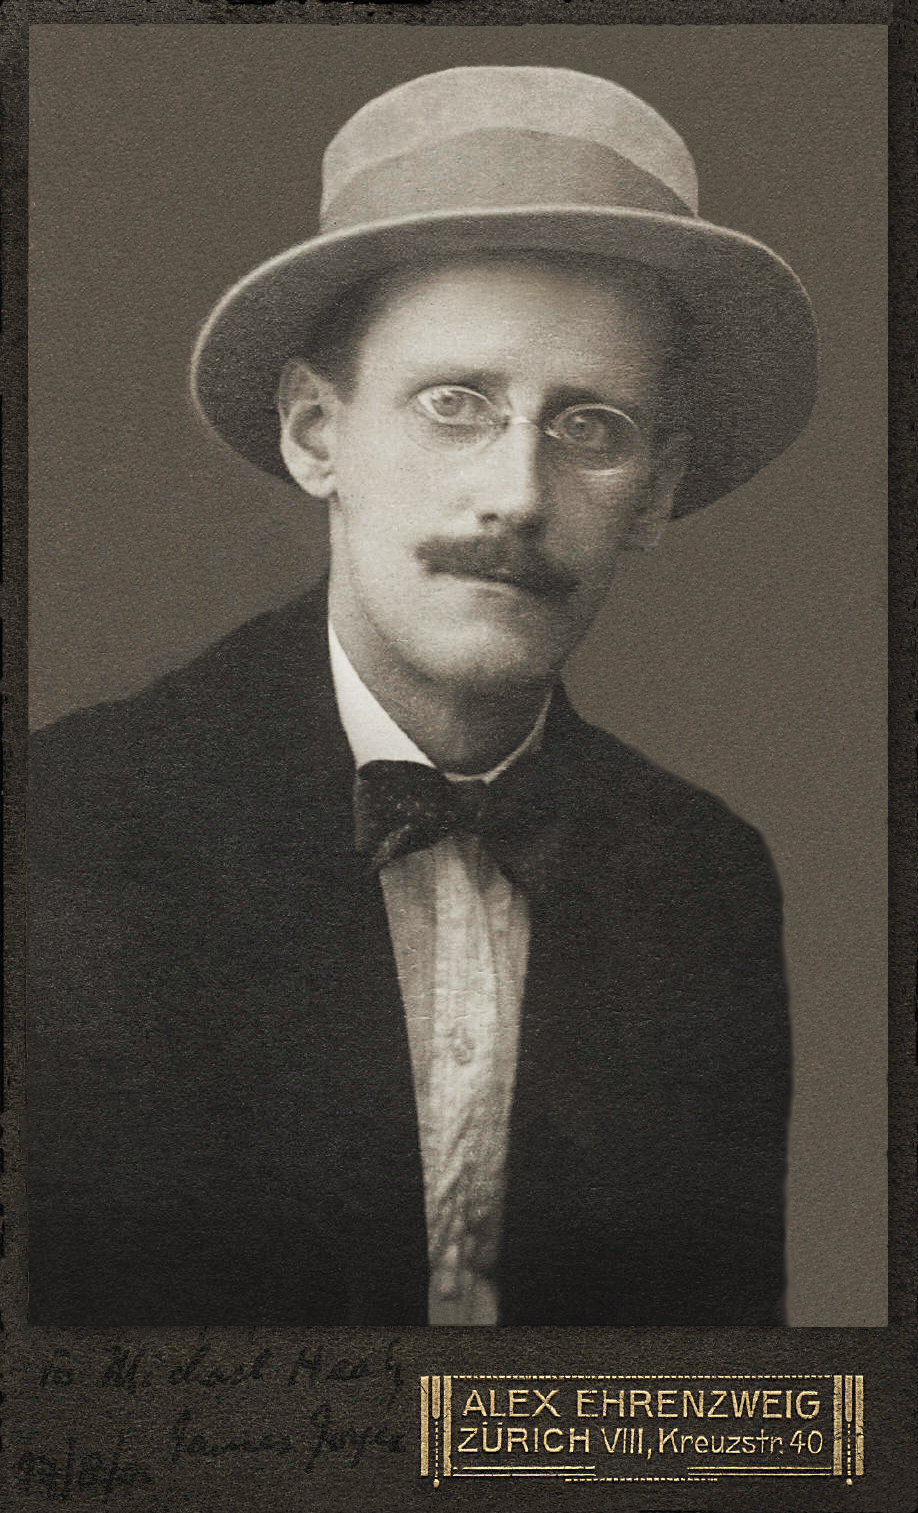 Eveline James Joyce Essay James Joyce By Alex Ehrenzweig  Restored Eveline James Joyce Essay